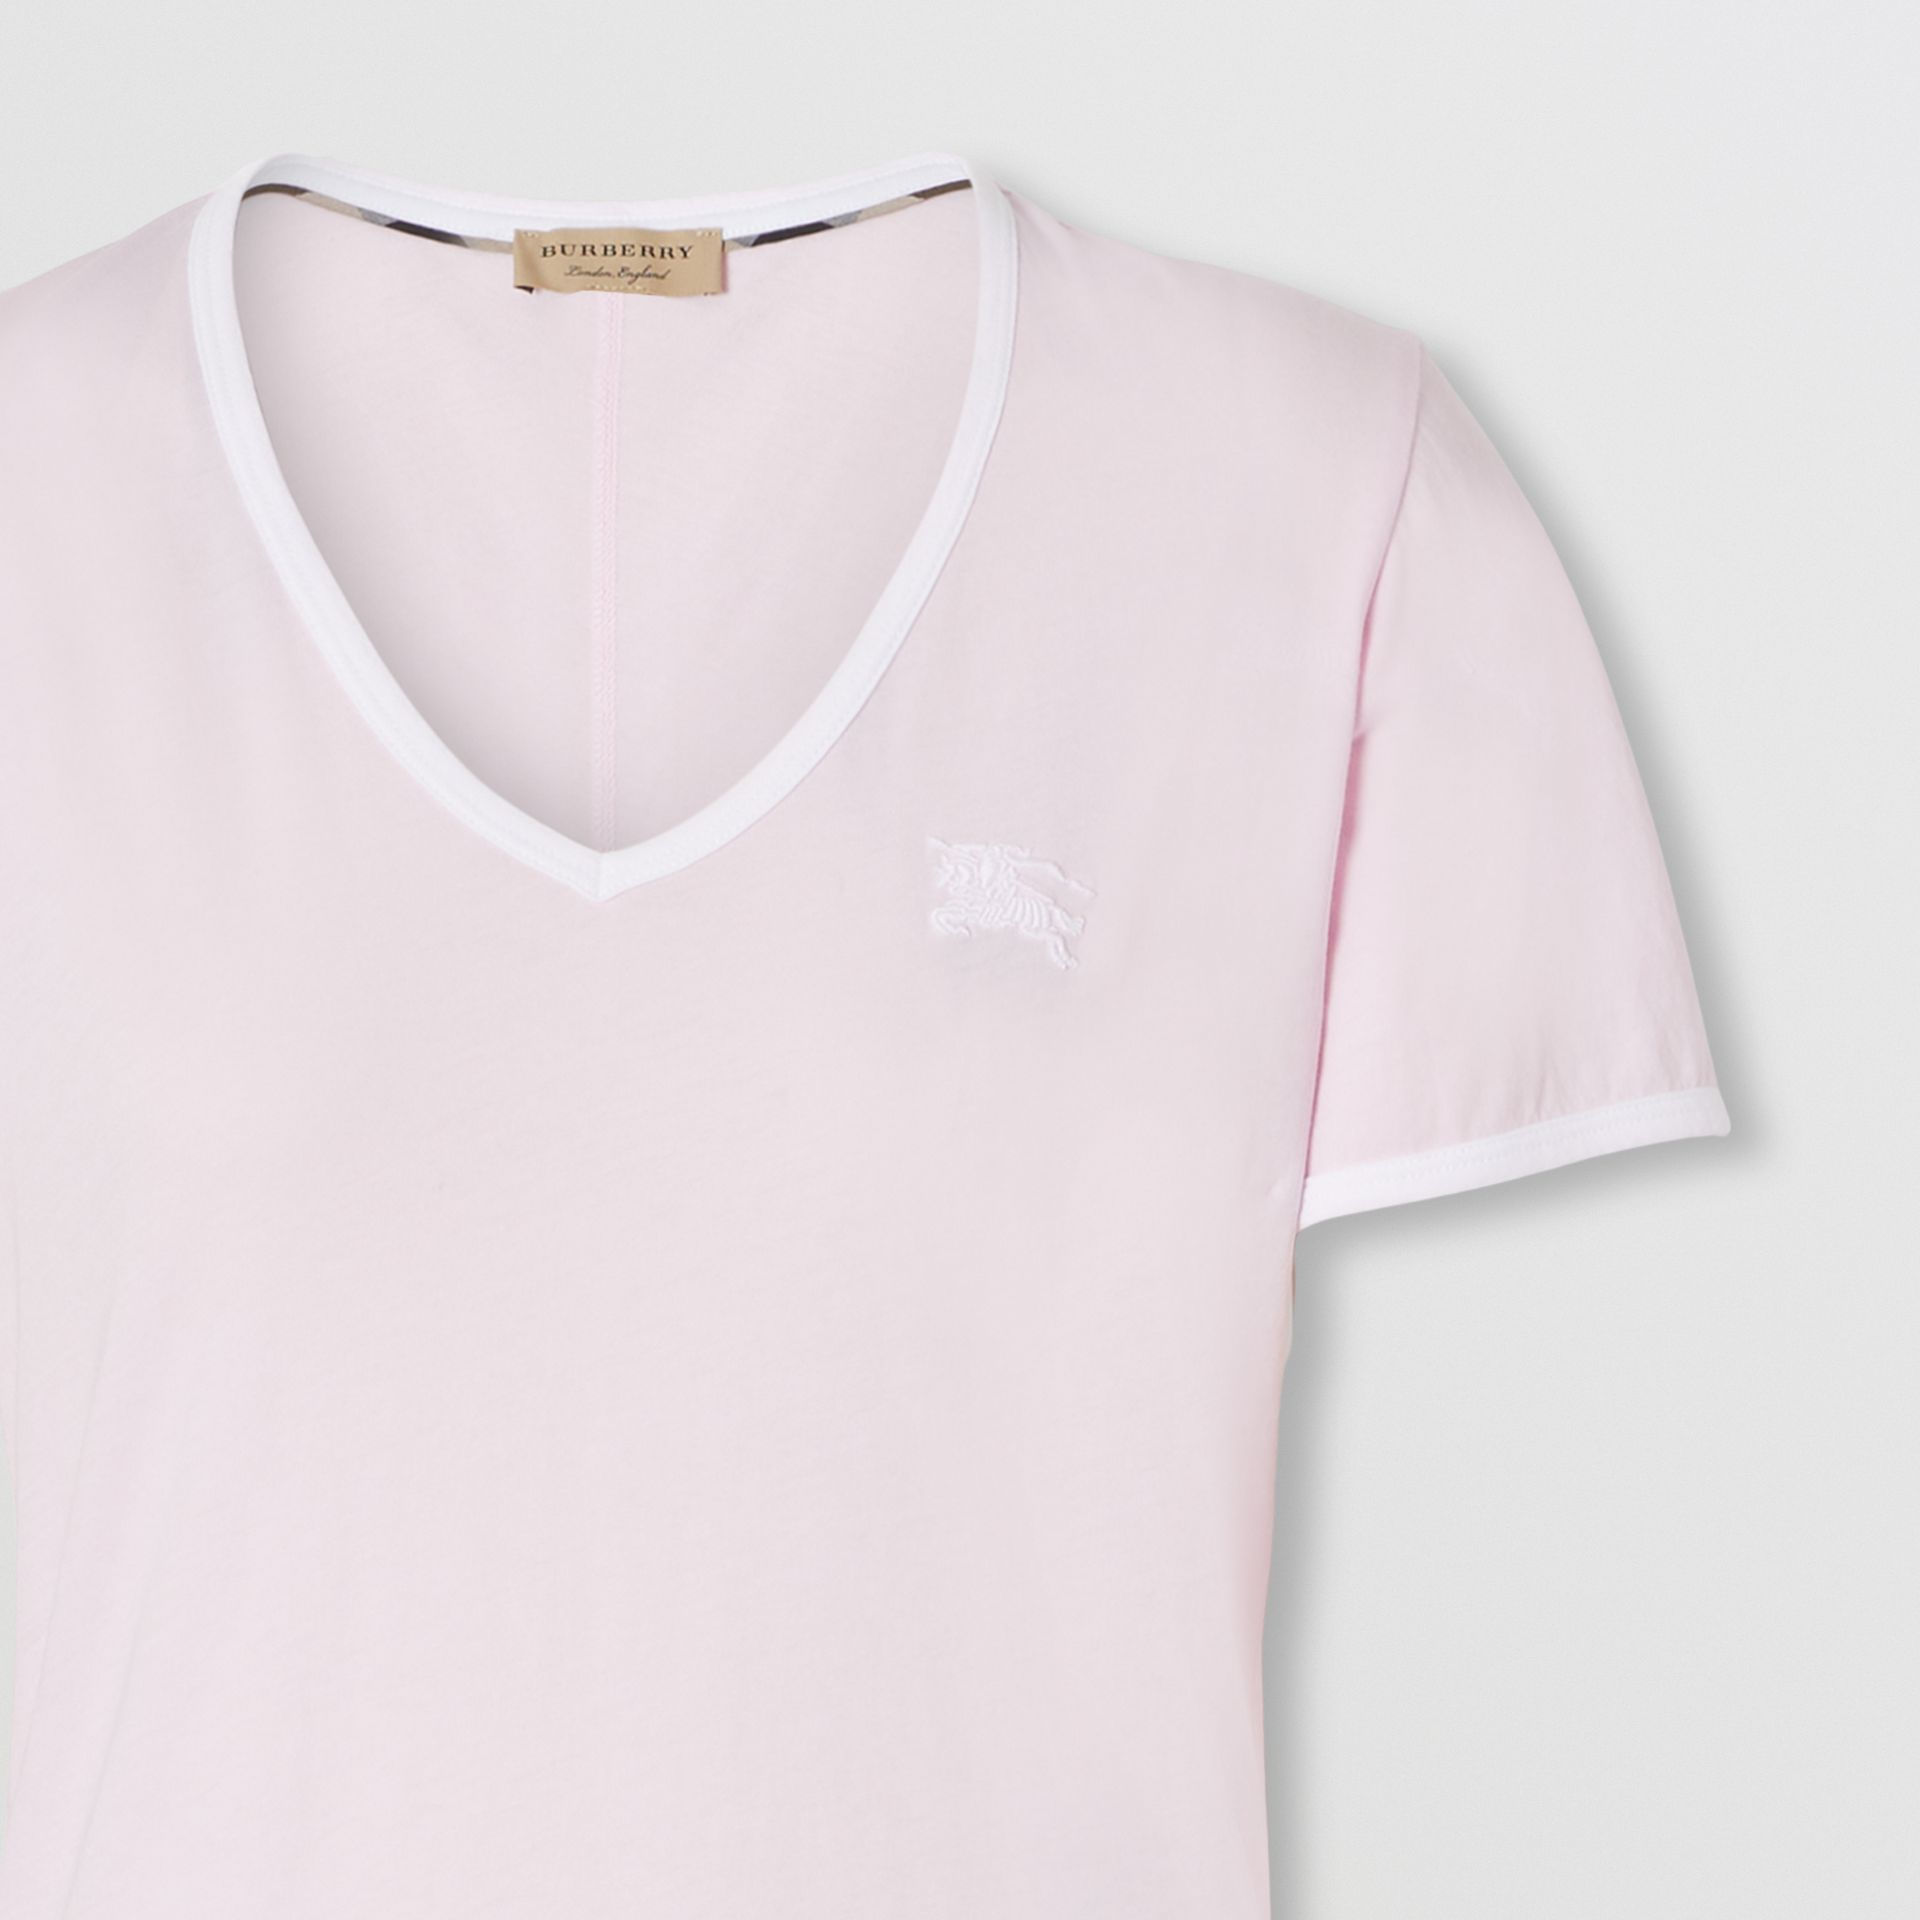 Embroidered EKD Cotton T-shirt in City Pink - Women | Burberry - gallery image 1